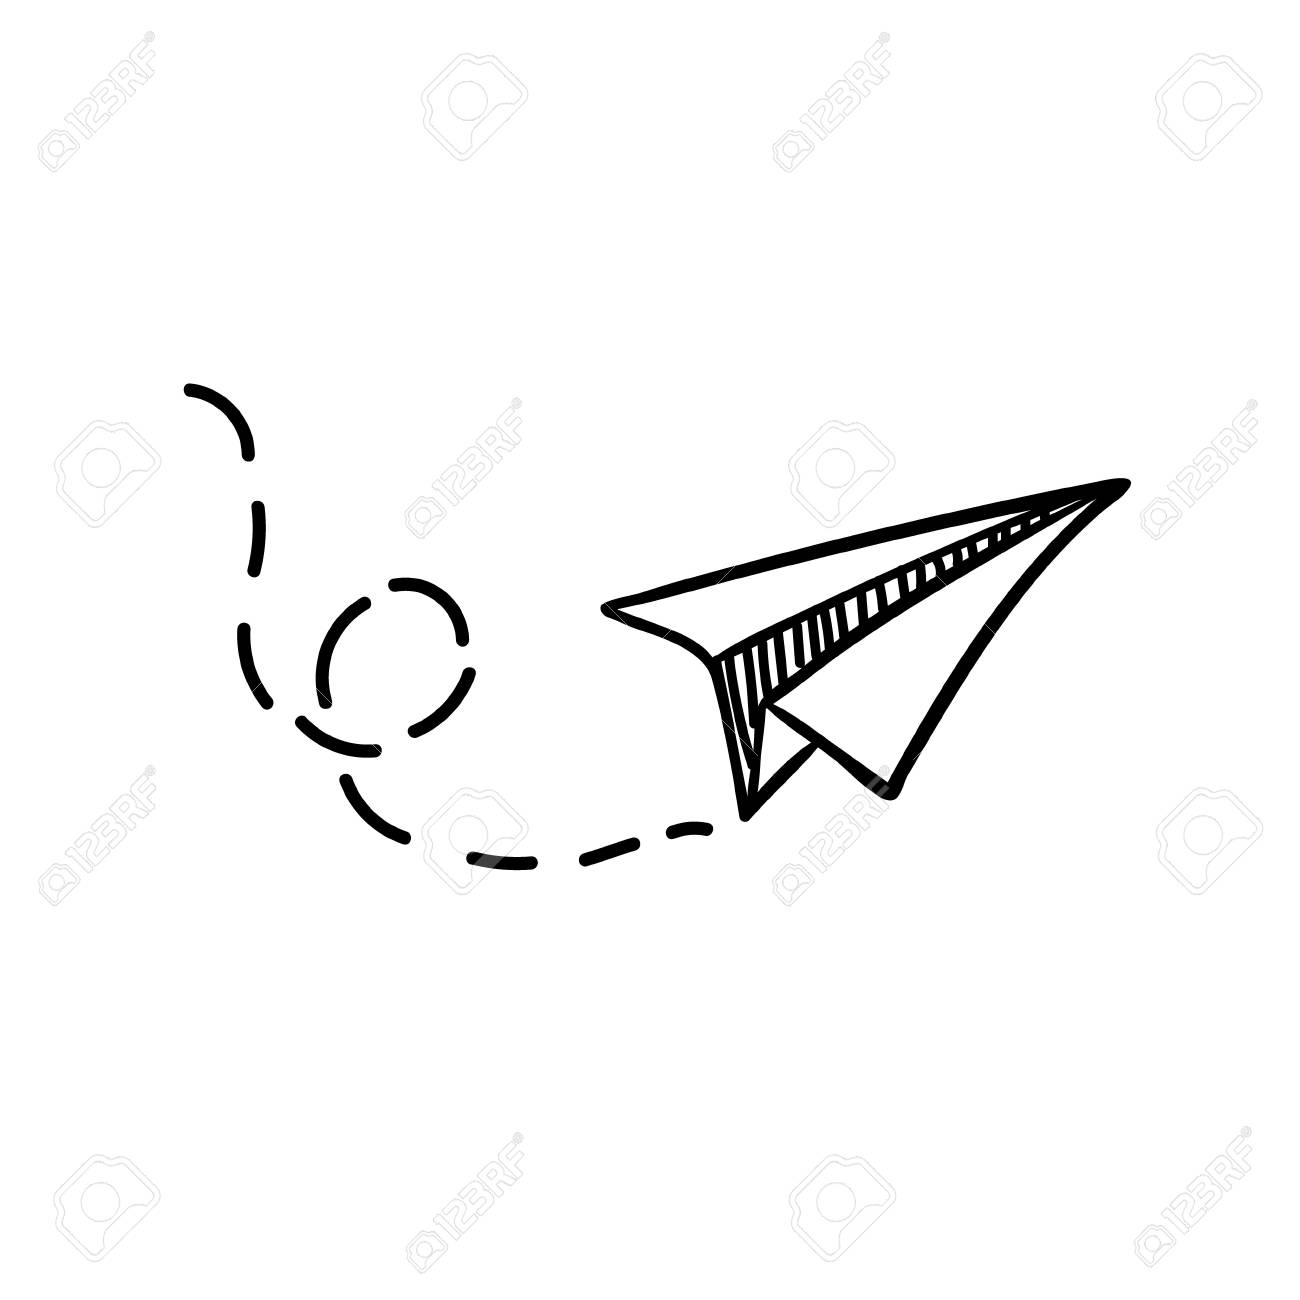 Vector paper airplane. Travel, route symbol. Vector illustration of hand drawn paper plane. Isolated. Outline. Hand drawn doodle airplane. Black linear paper plane icon - 89965356